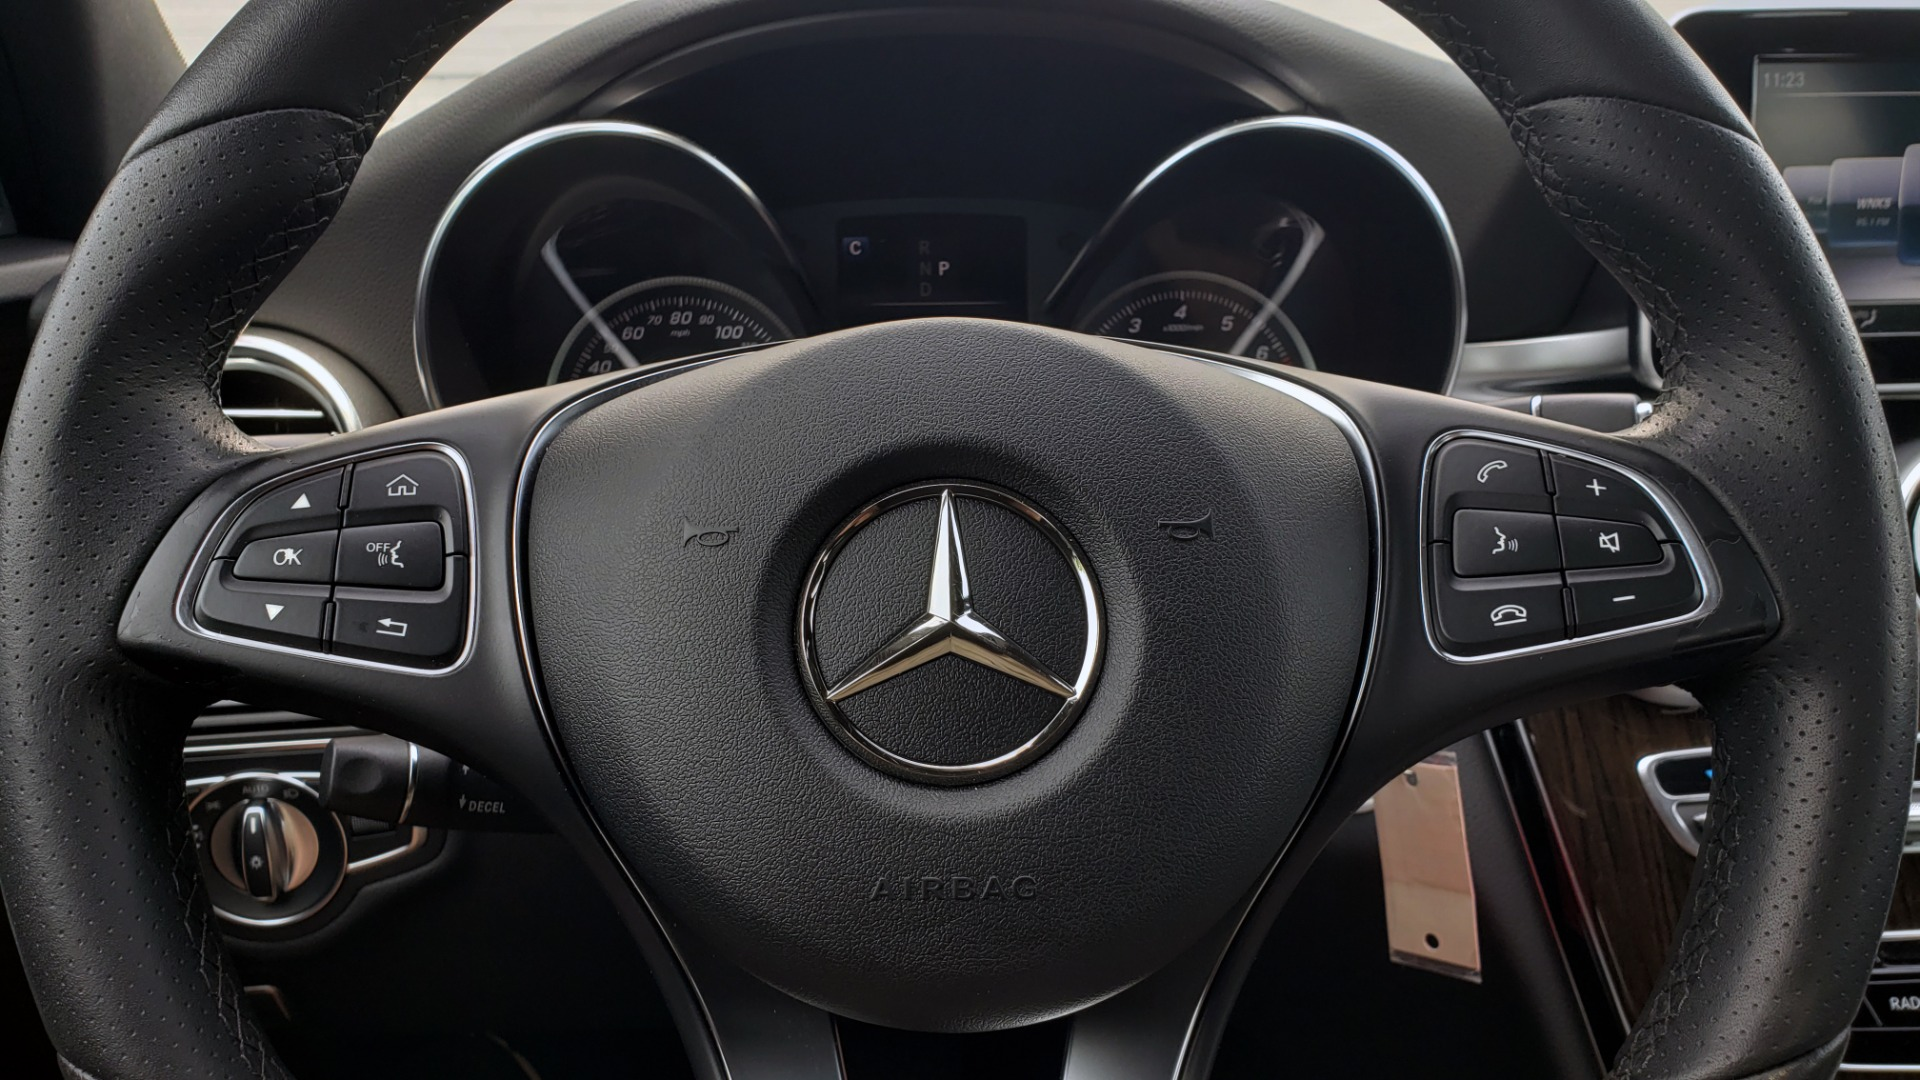 Used 2018 Mercedes-Benz C-CLASS C 300 PREMIUM / HTD STS / APPLE CARPLAY / 18IN WHEELS / REARVIEW for sale $24,795 at Formula Imports in Charlotte NC 28227 40